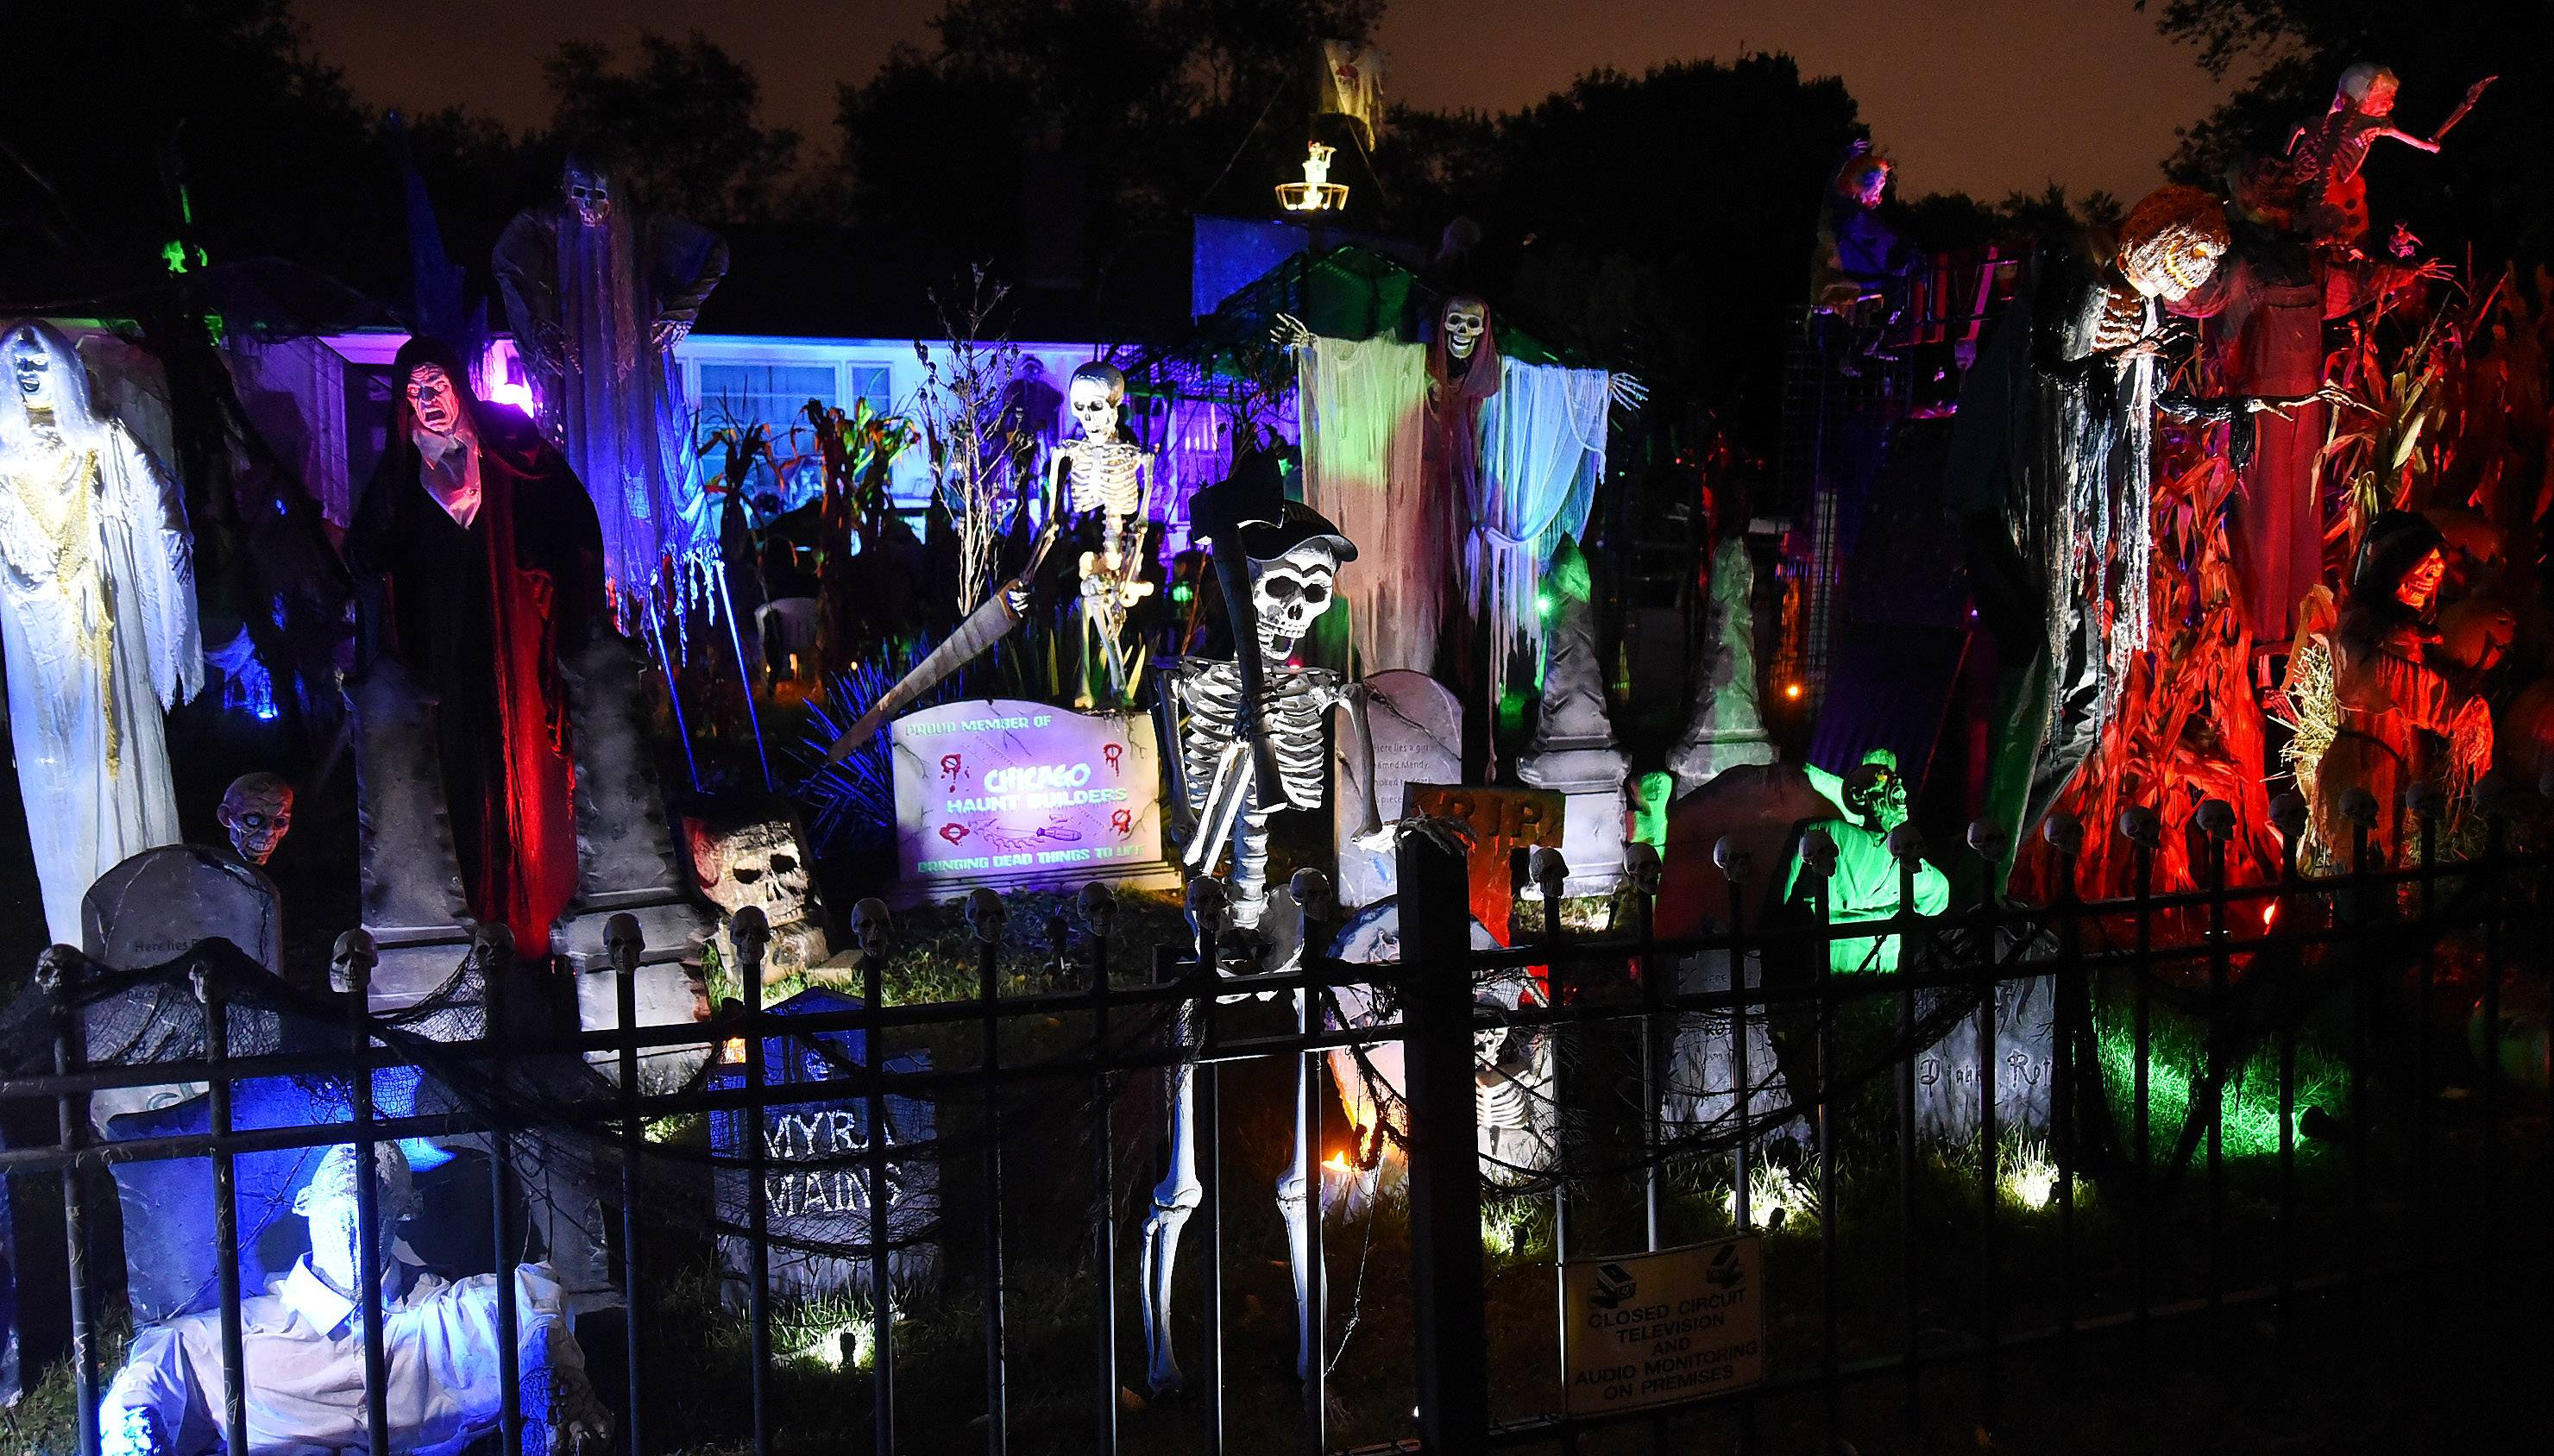 Hundreds of visitors stop by every night during October, but 1,500 visit this Arlington Heights home on Halloween. For 17 years, Michael Podlin and TammySue Margalit have turned their Arlington Heights home into a spectacular Halloween display.